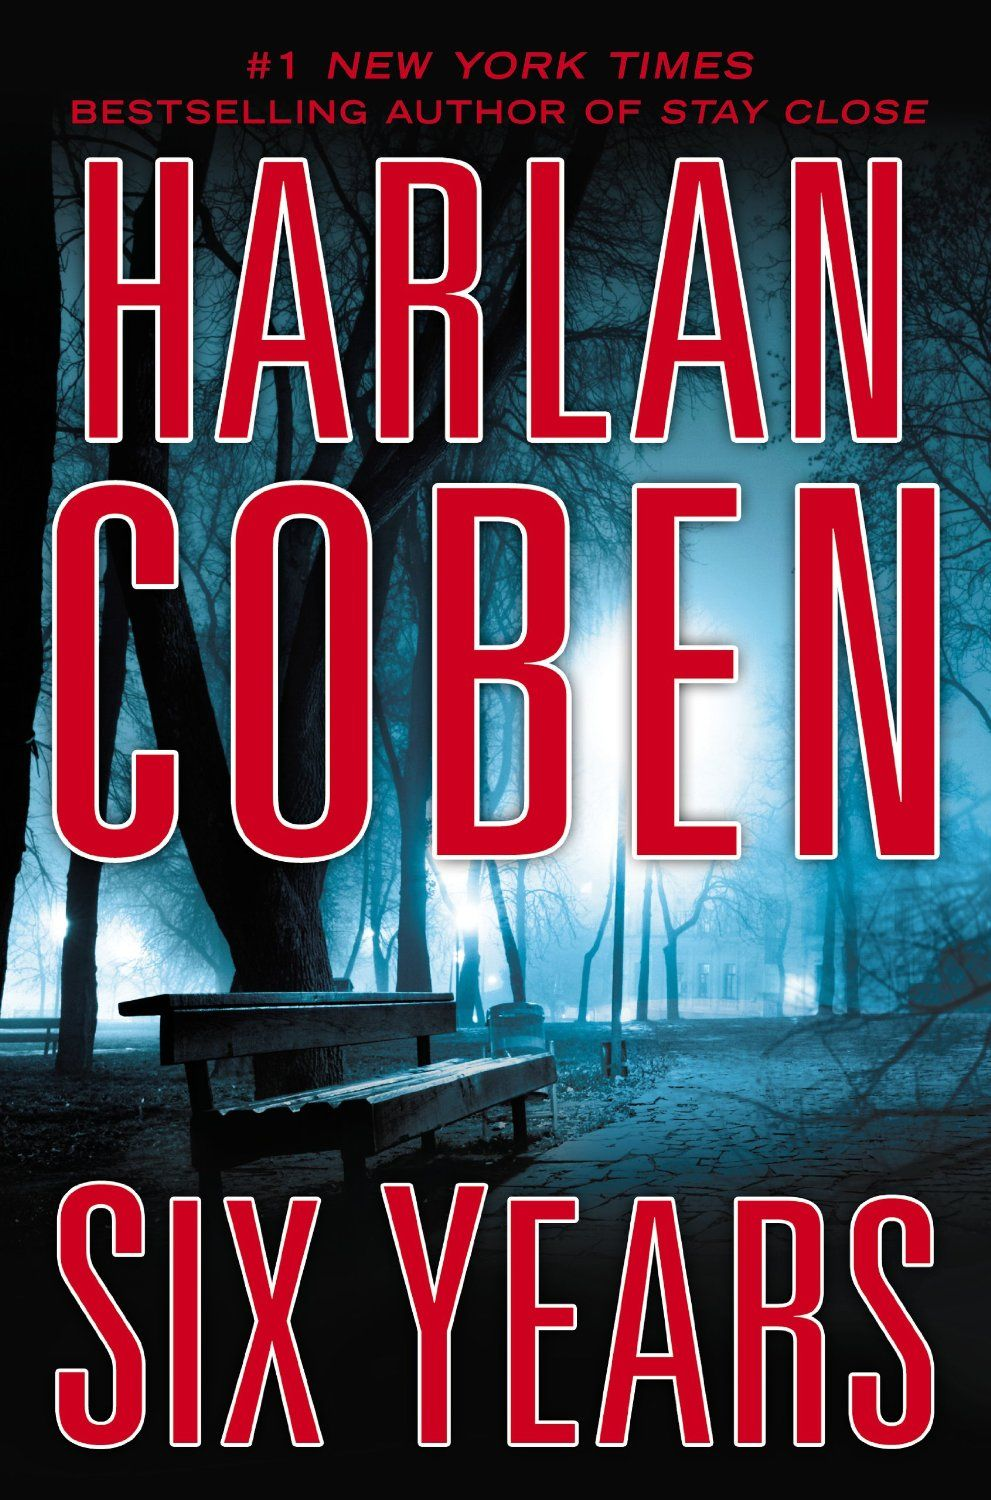 Six Years By Harlan Coben 3 79 Harlan Coben Books Book Club Books 100 Books To Read